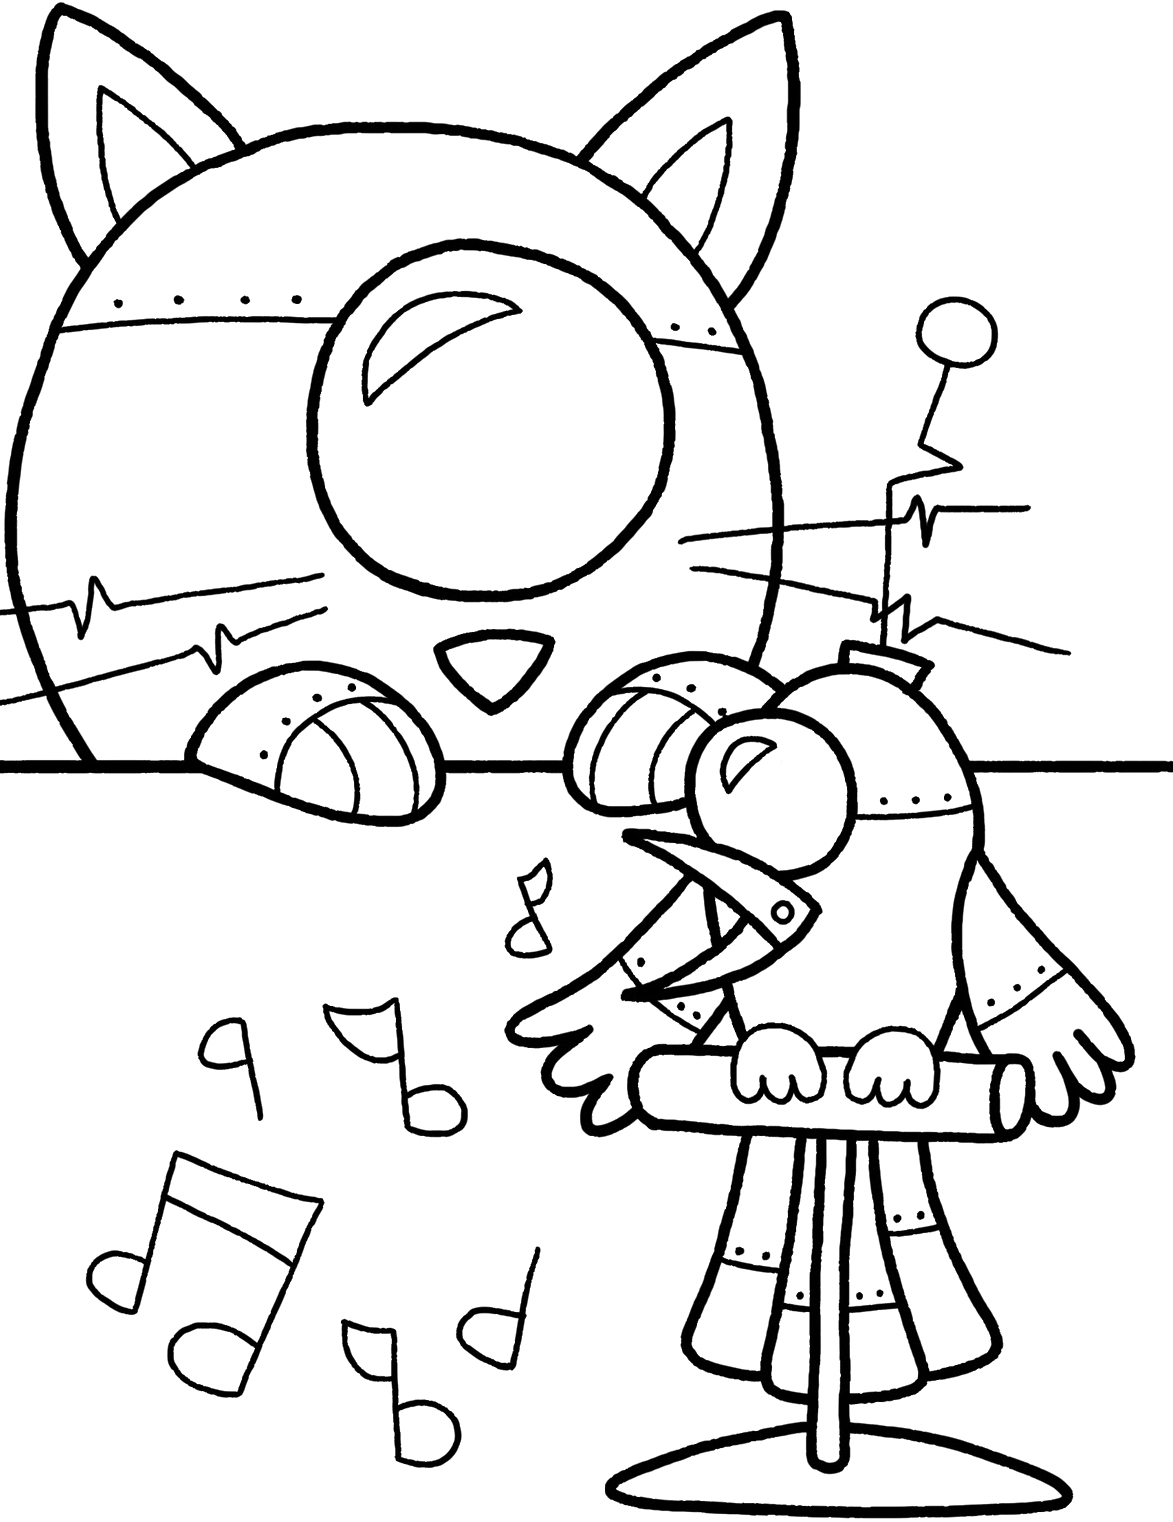 Robot coloring pages only coloring pages for Printable robot coloring pages